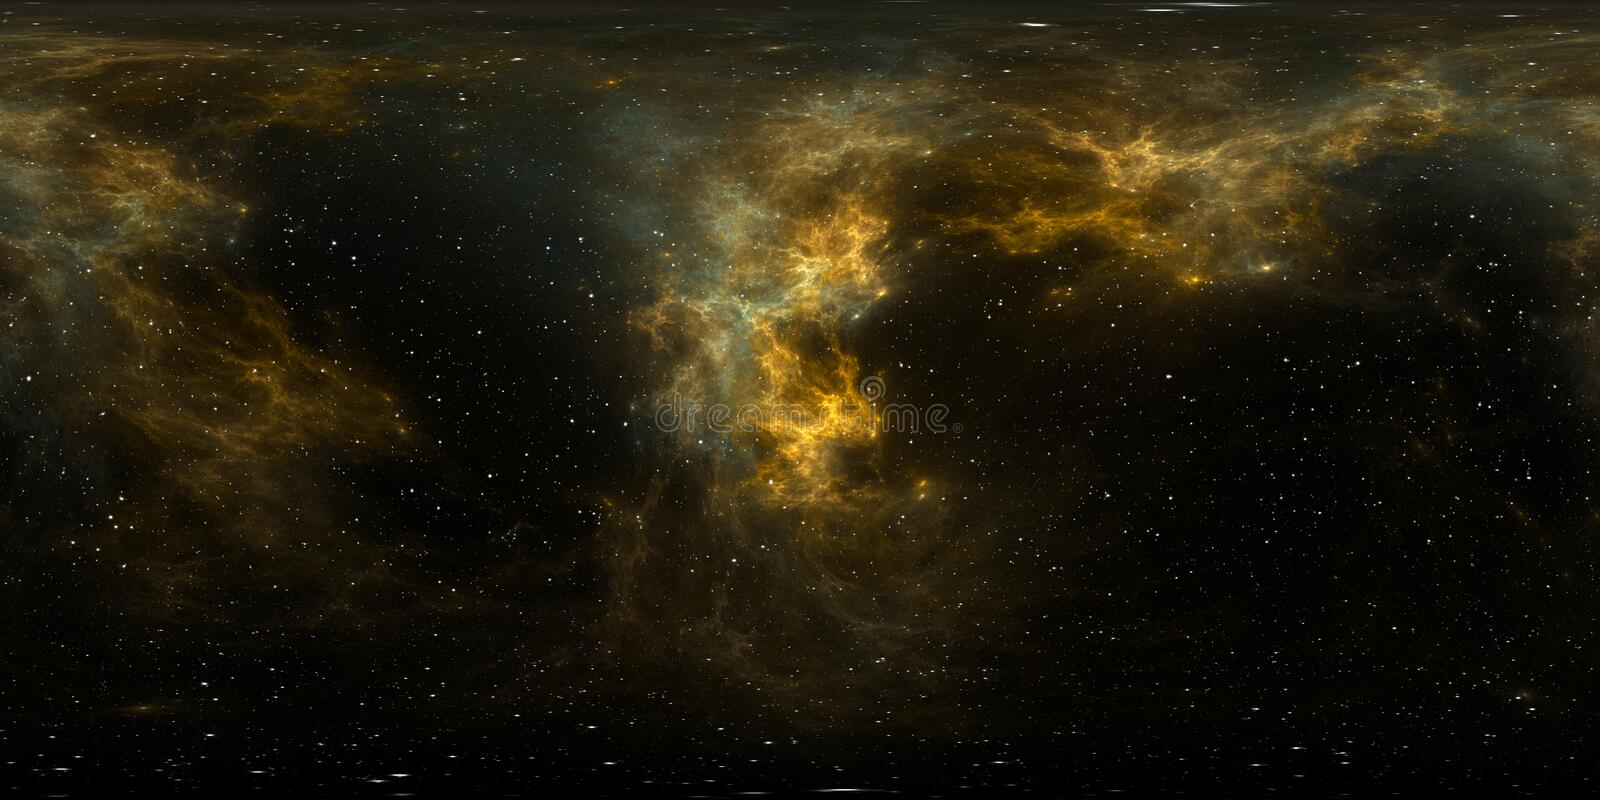 360 degree giant nebula after a supernova explosion, equirectangular projection, environment map. HDRI spherical panorama stock photo